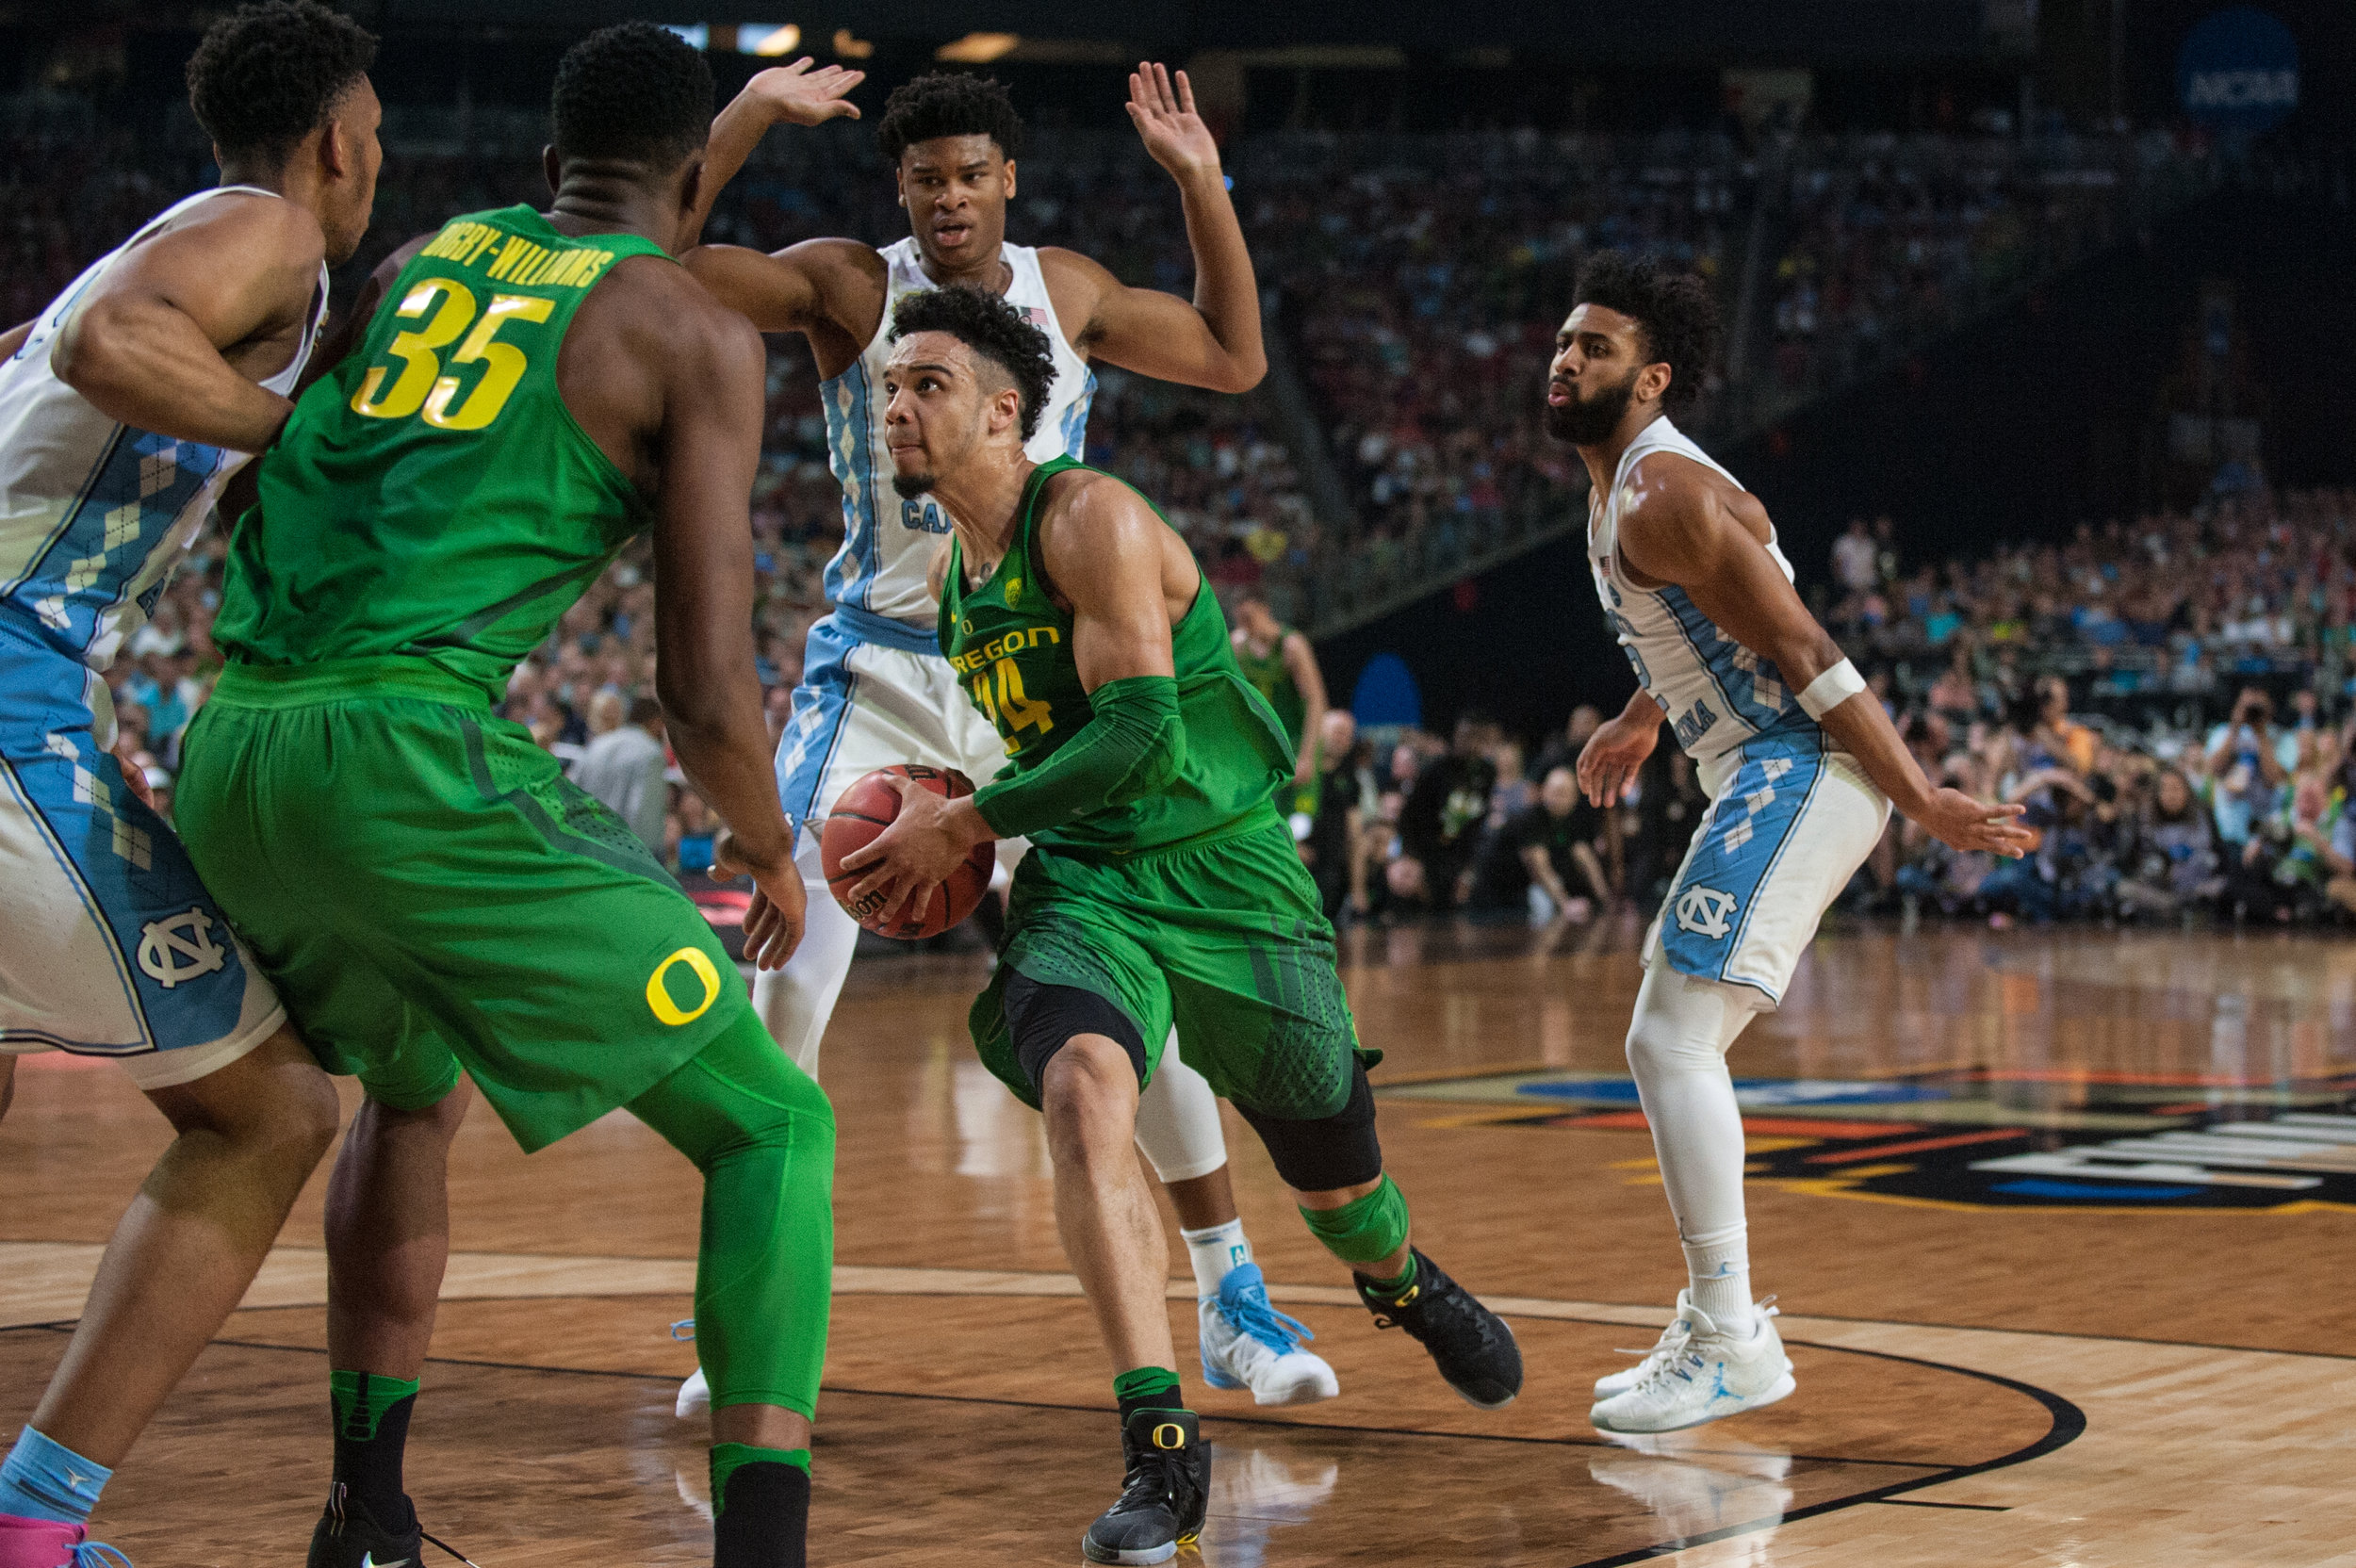 17.03.31.emg.an.final.four.oregon.vs.north.carolina-28.jpg